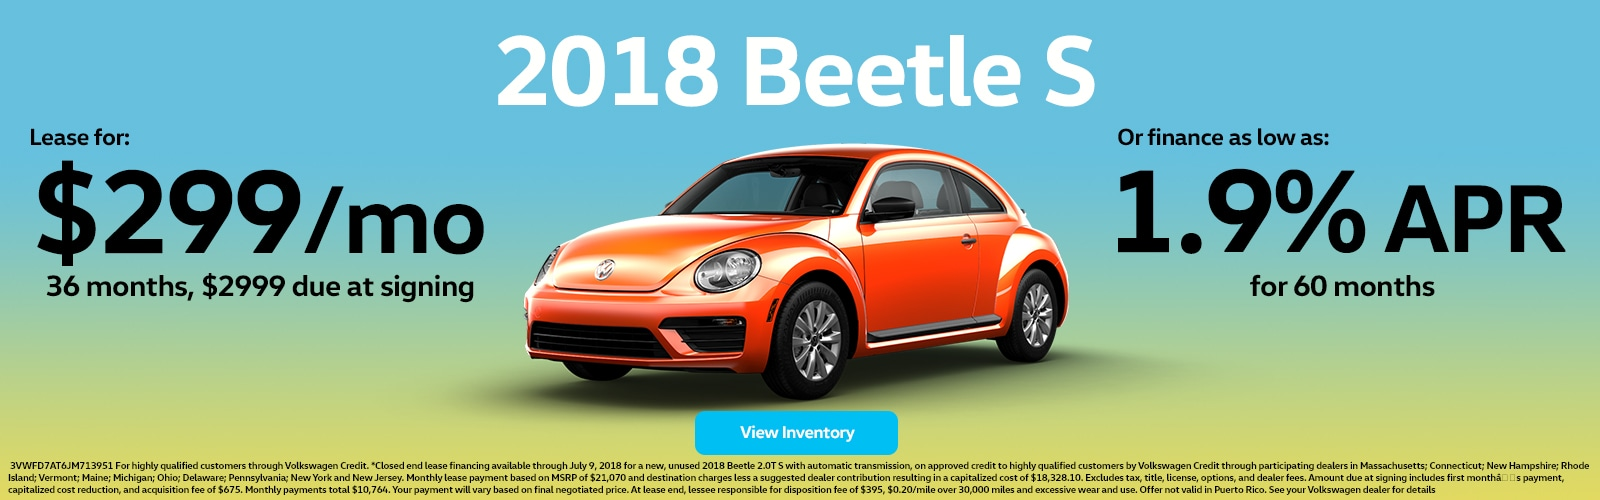 info from dealers motors size archives riberbankmotors riverbank dealerphoto vw for stamford click volkswagen magazine information full iii corp connecticut riverbankmotors ct in thesamba com